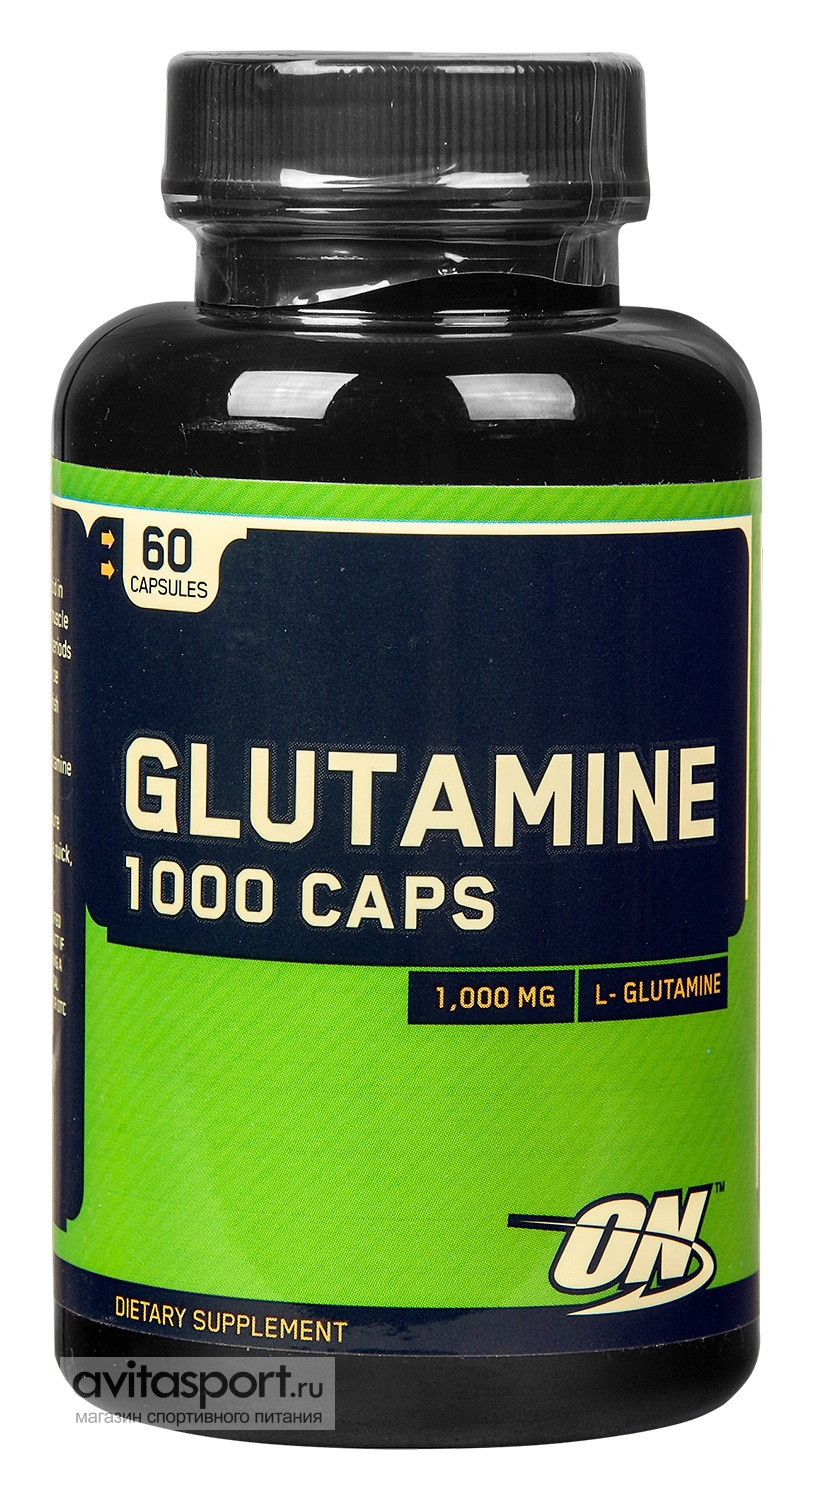 Optimum Nutrition Glutamine 1000 Caps 60 капсул